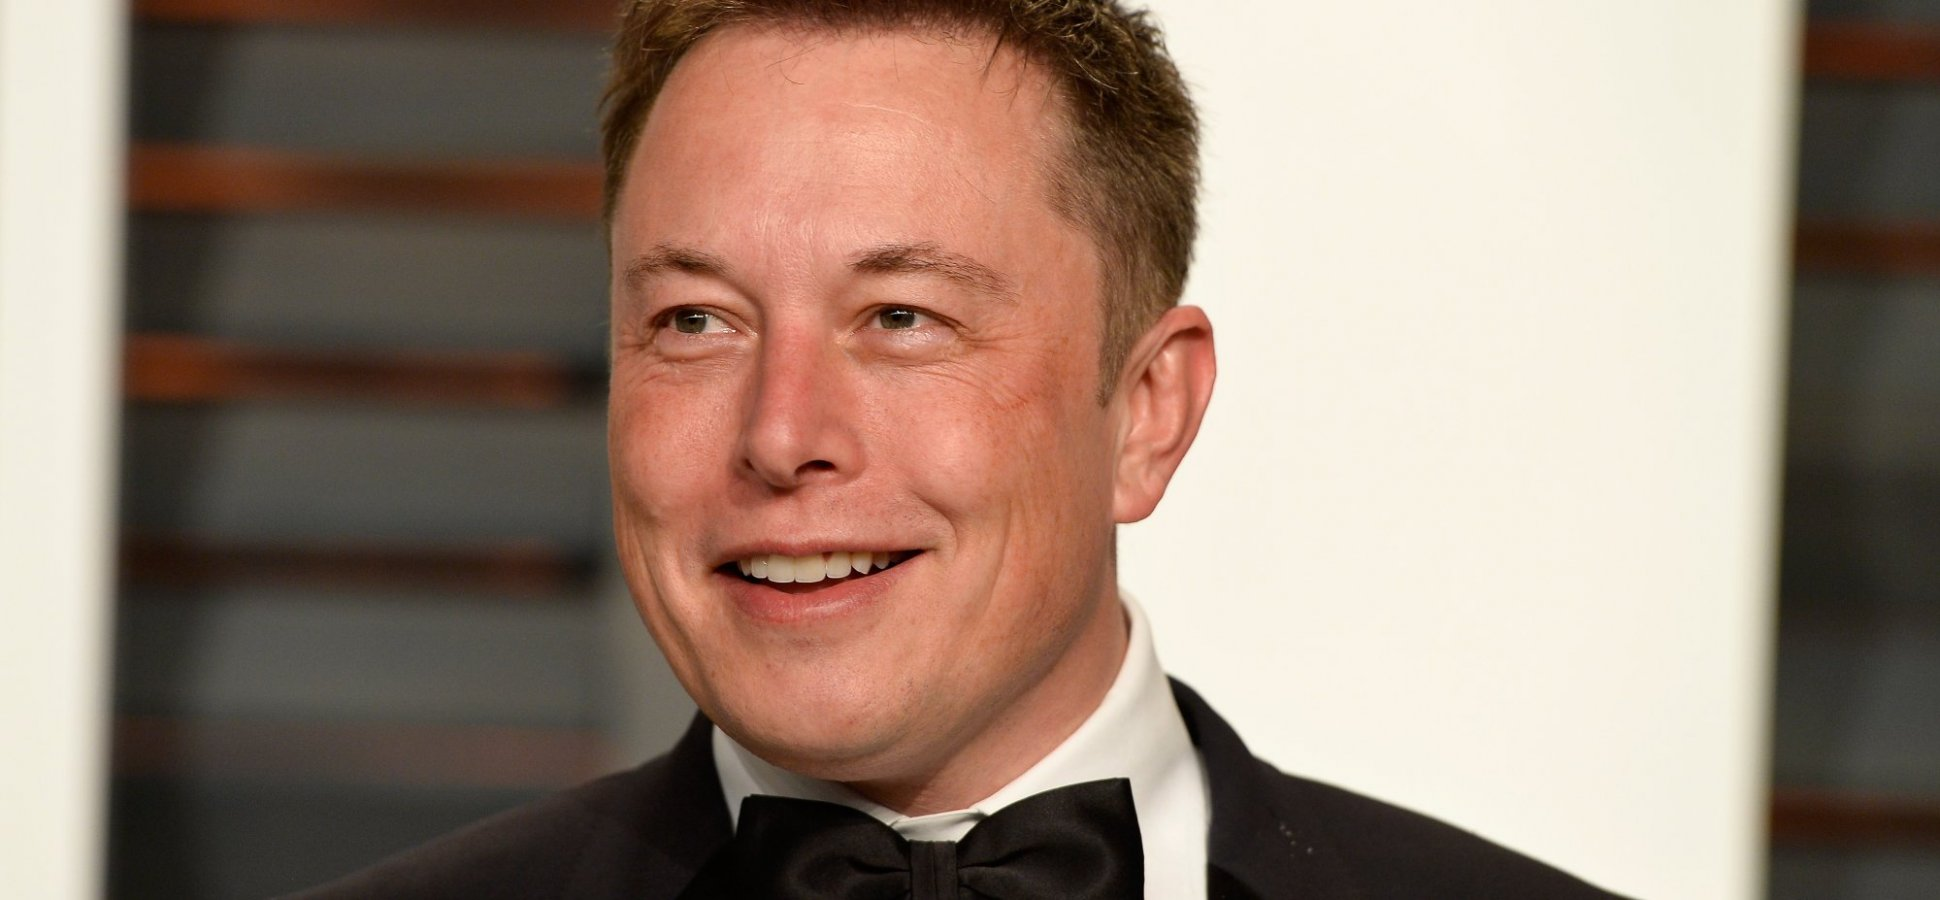 Want More Courage? Follow Elon Musk's 3 Rules Every Day